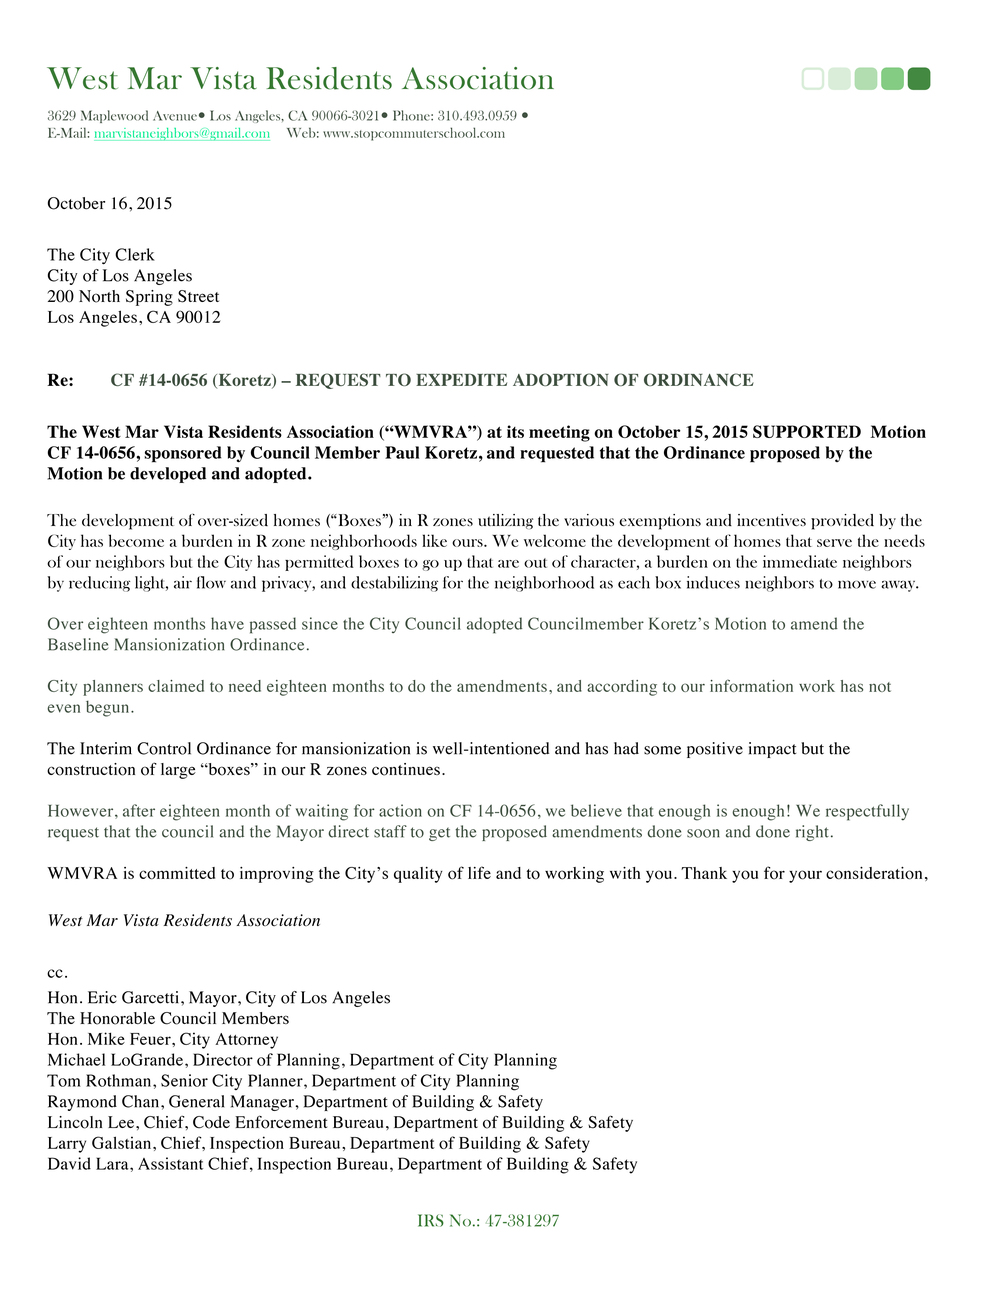 West Mar Vista RA letter.jpg